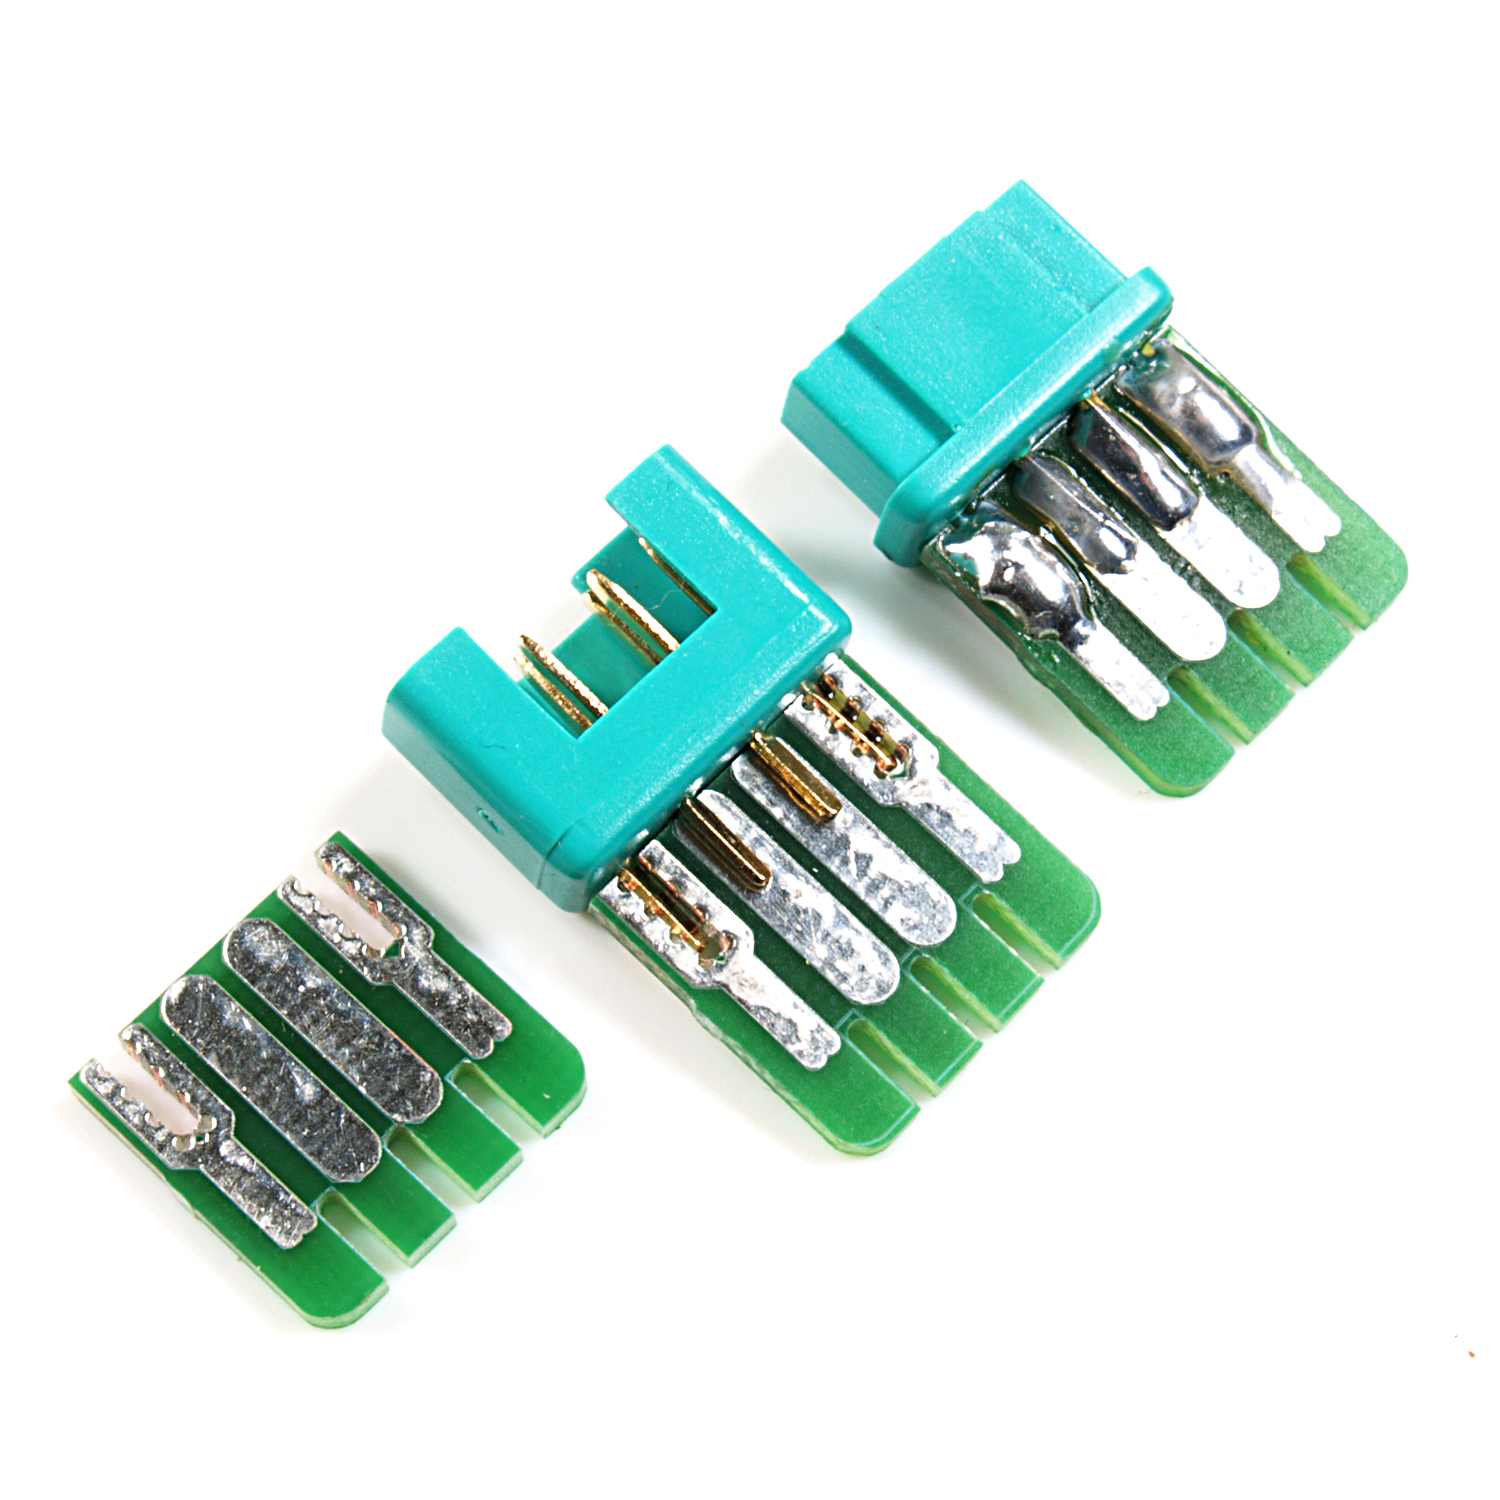 Oxid Eshop 4 Strain Relief Circuit Board For High Amp Connectors The